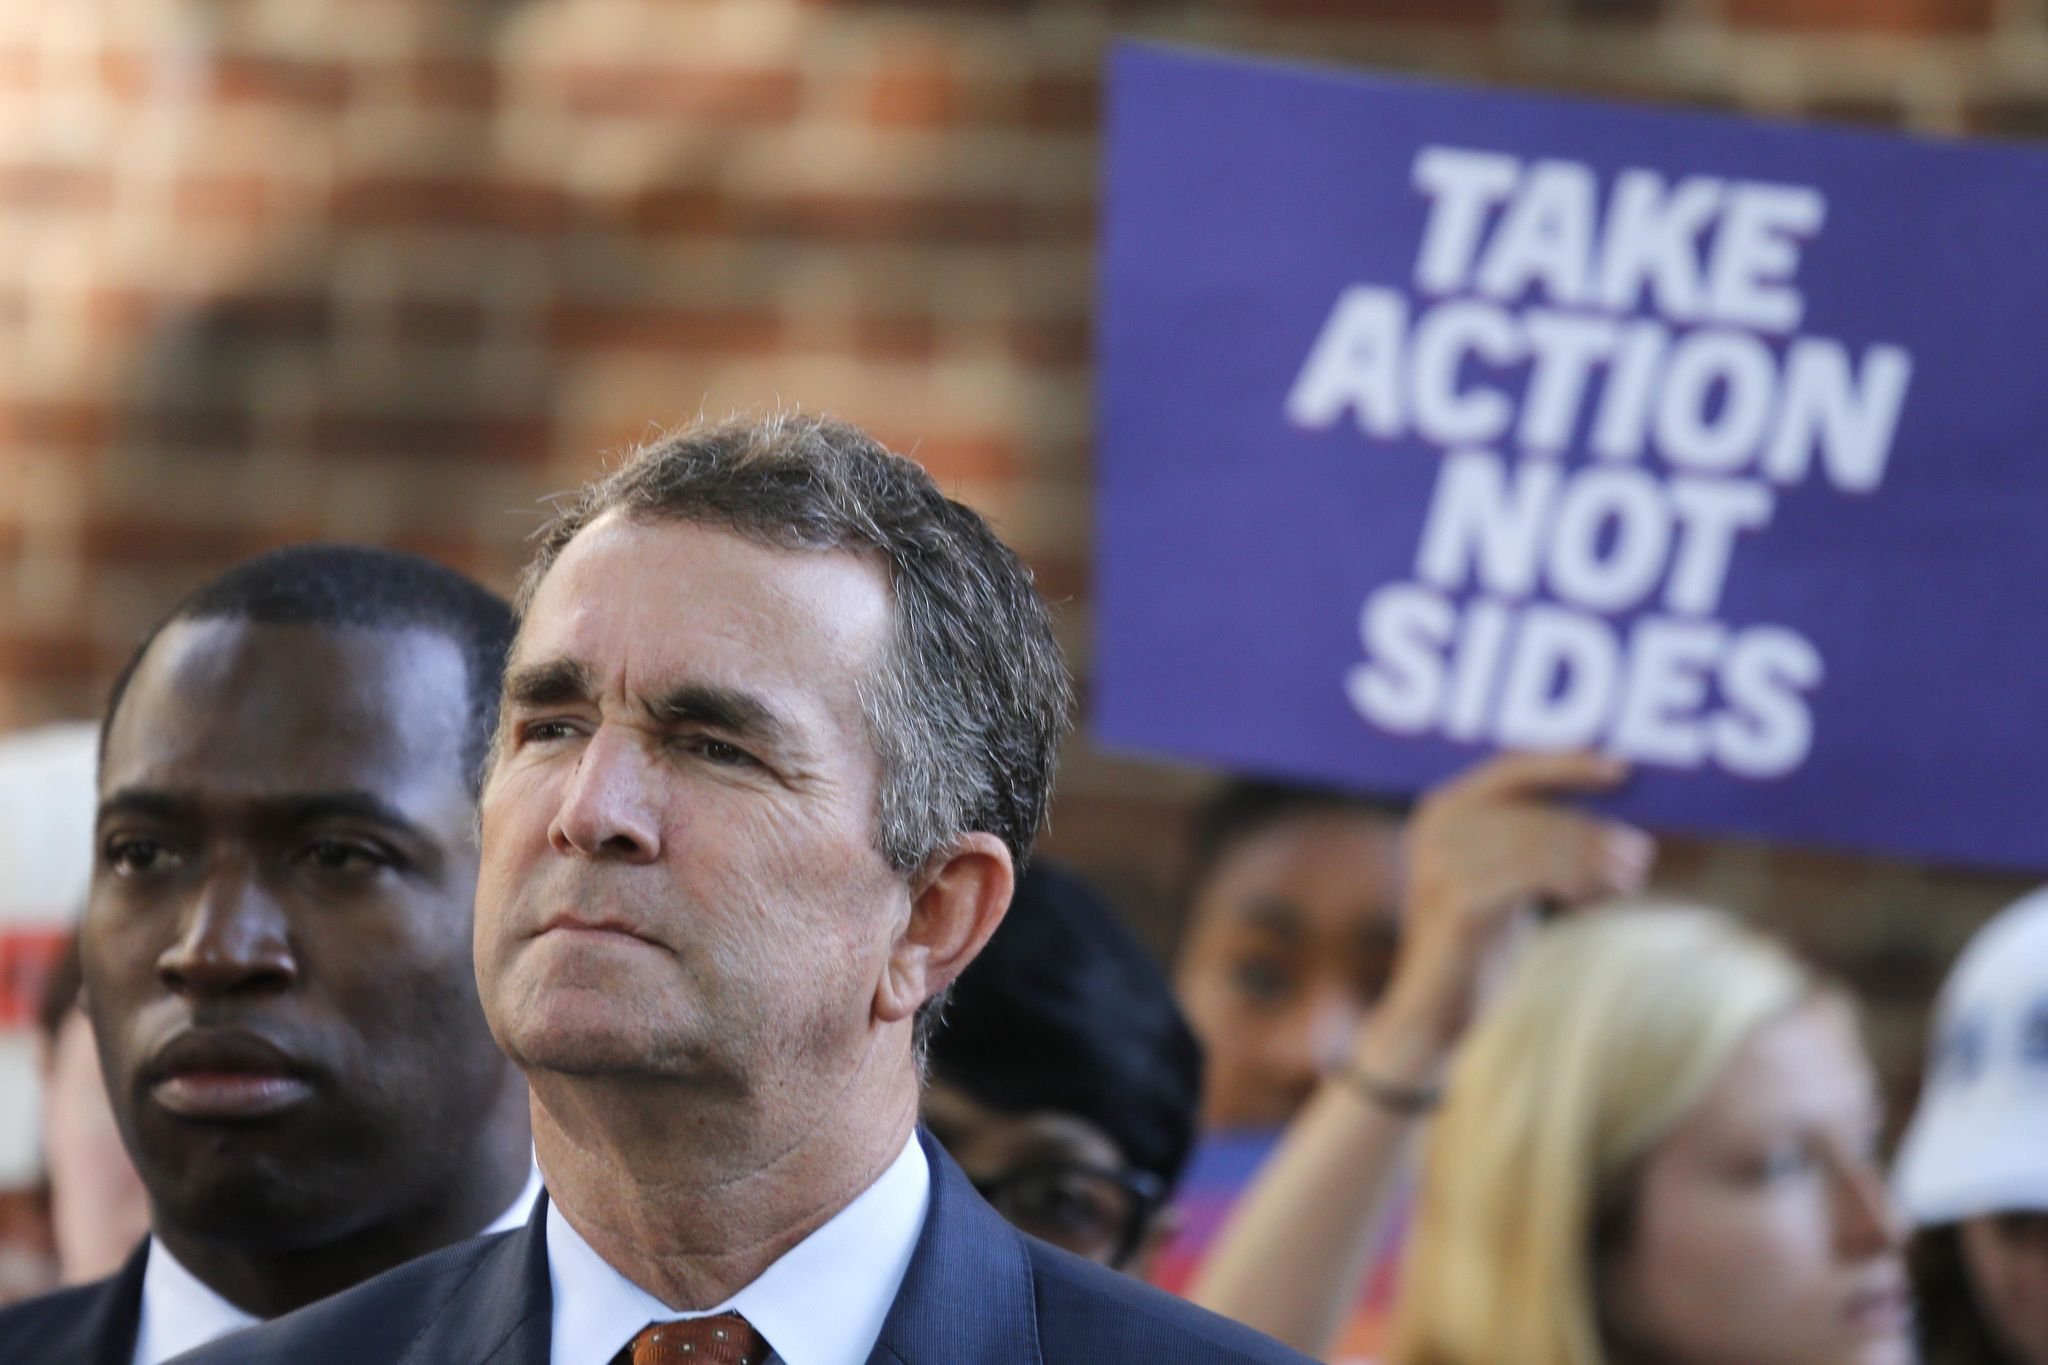 Trump's tweets hardly as 'racist' as Virginia's governor